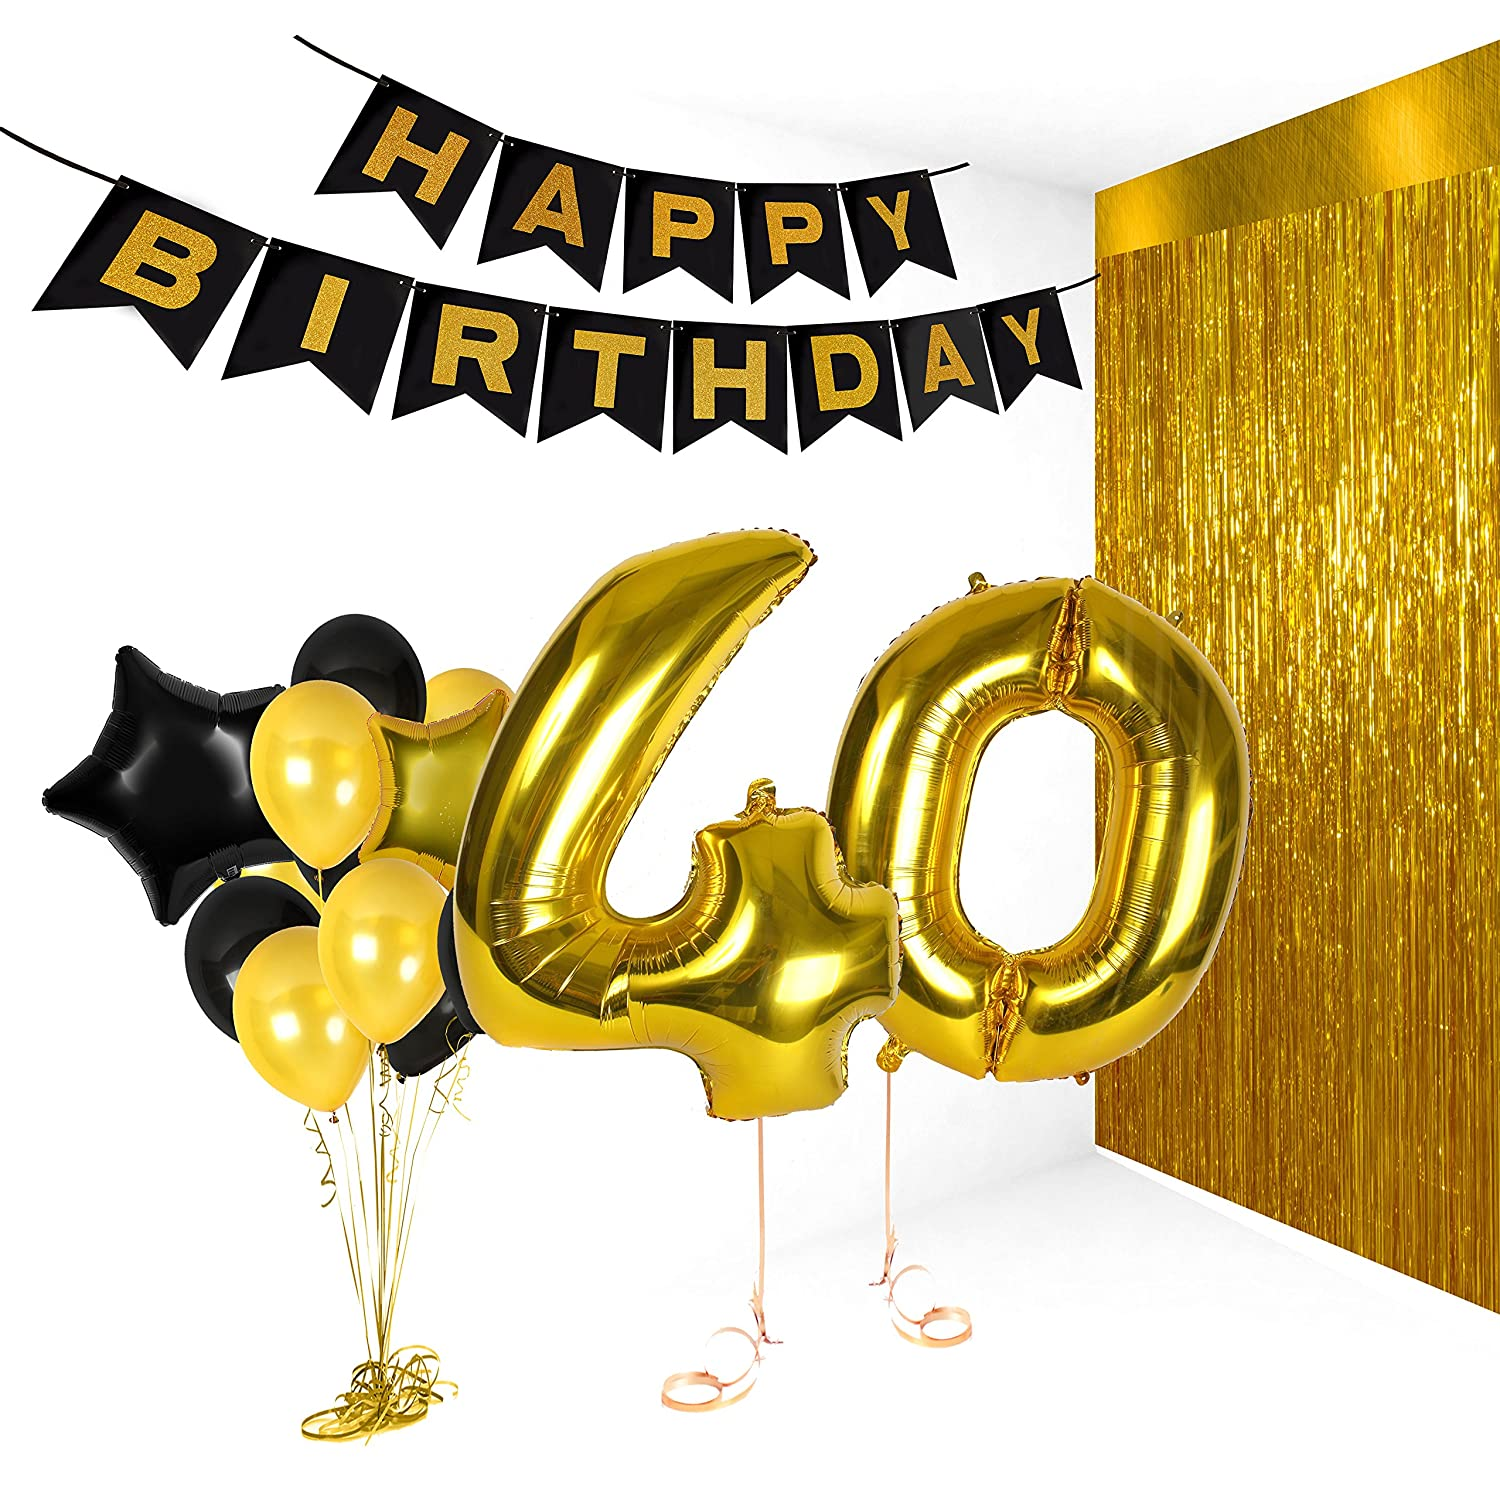 Amazon 40th Birthday Metallic Decorations Ideas Gifts For Women And Men Photo Booth Props Happy Bday Garlands Gold Backdrop Centerpieces Party